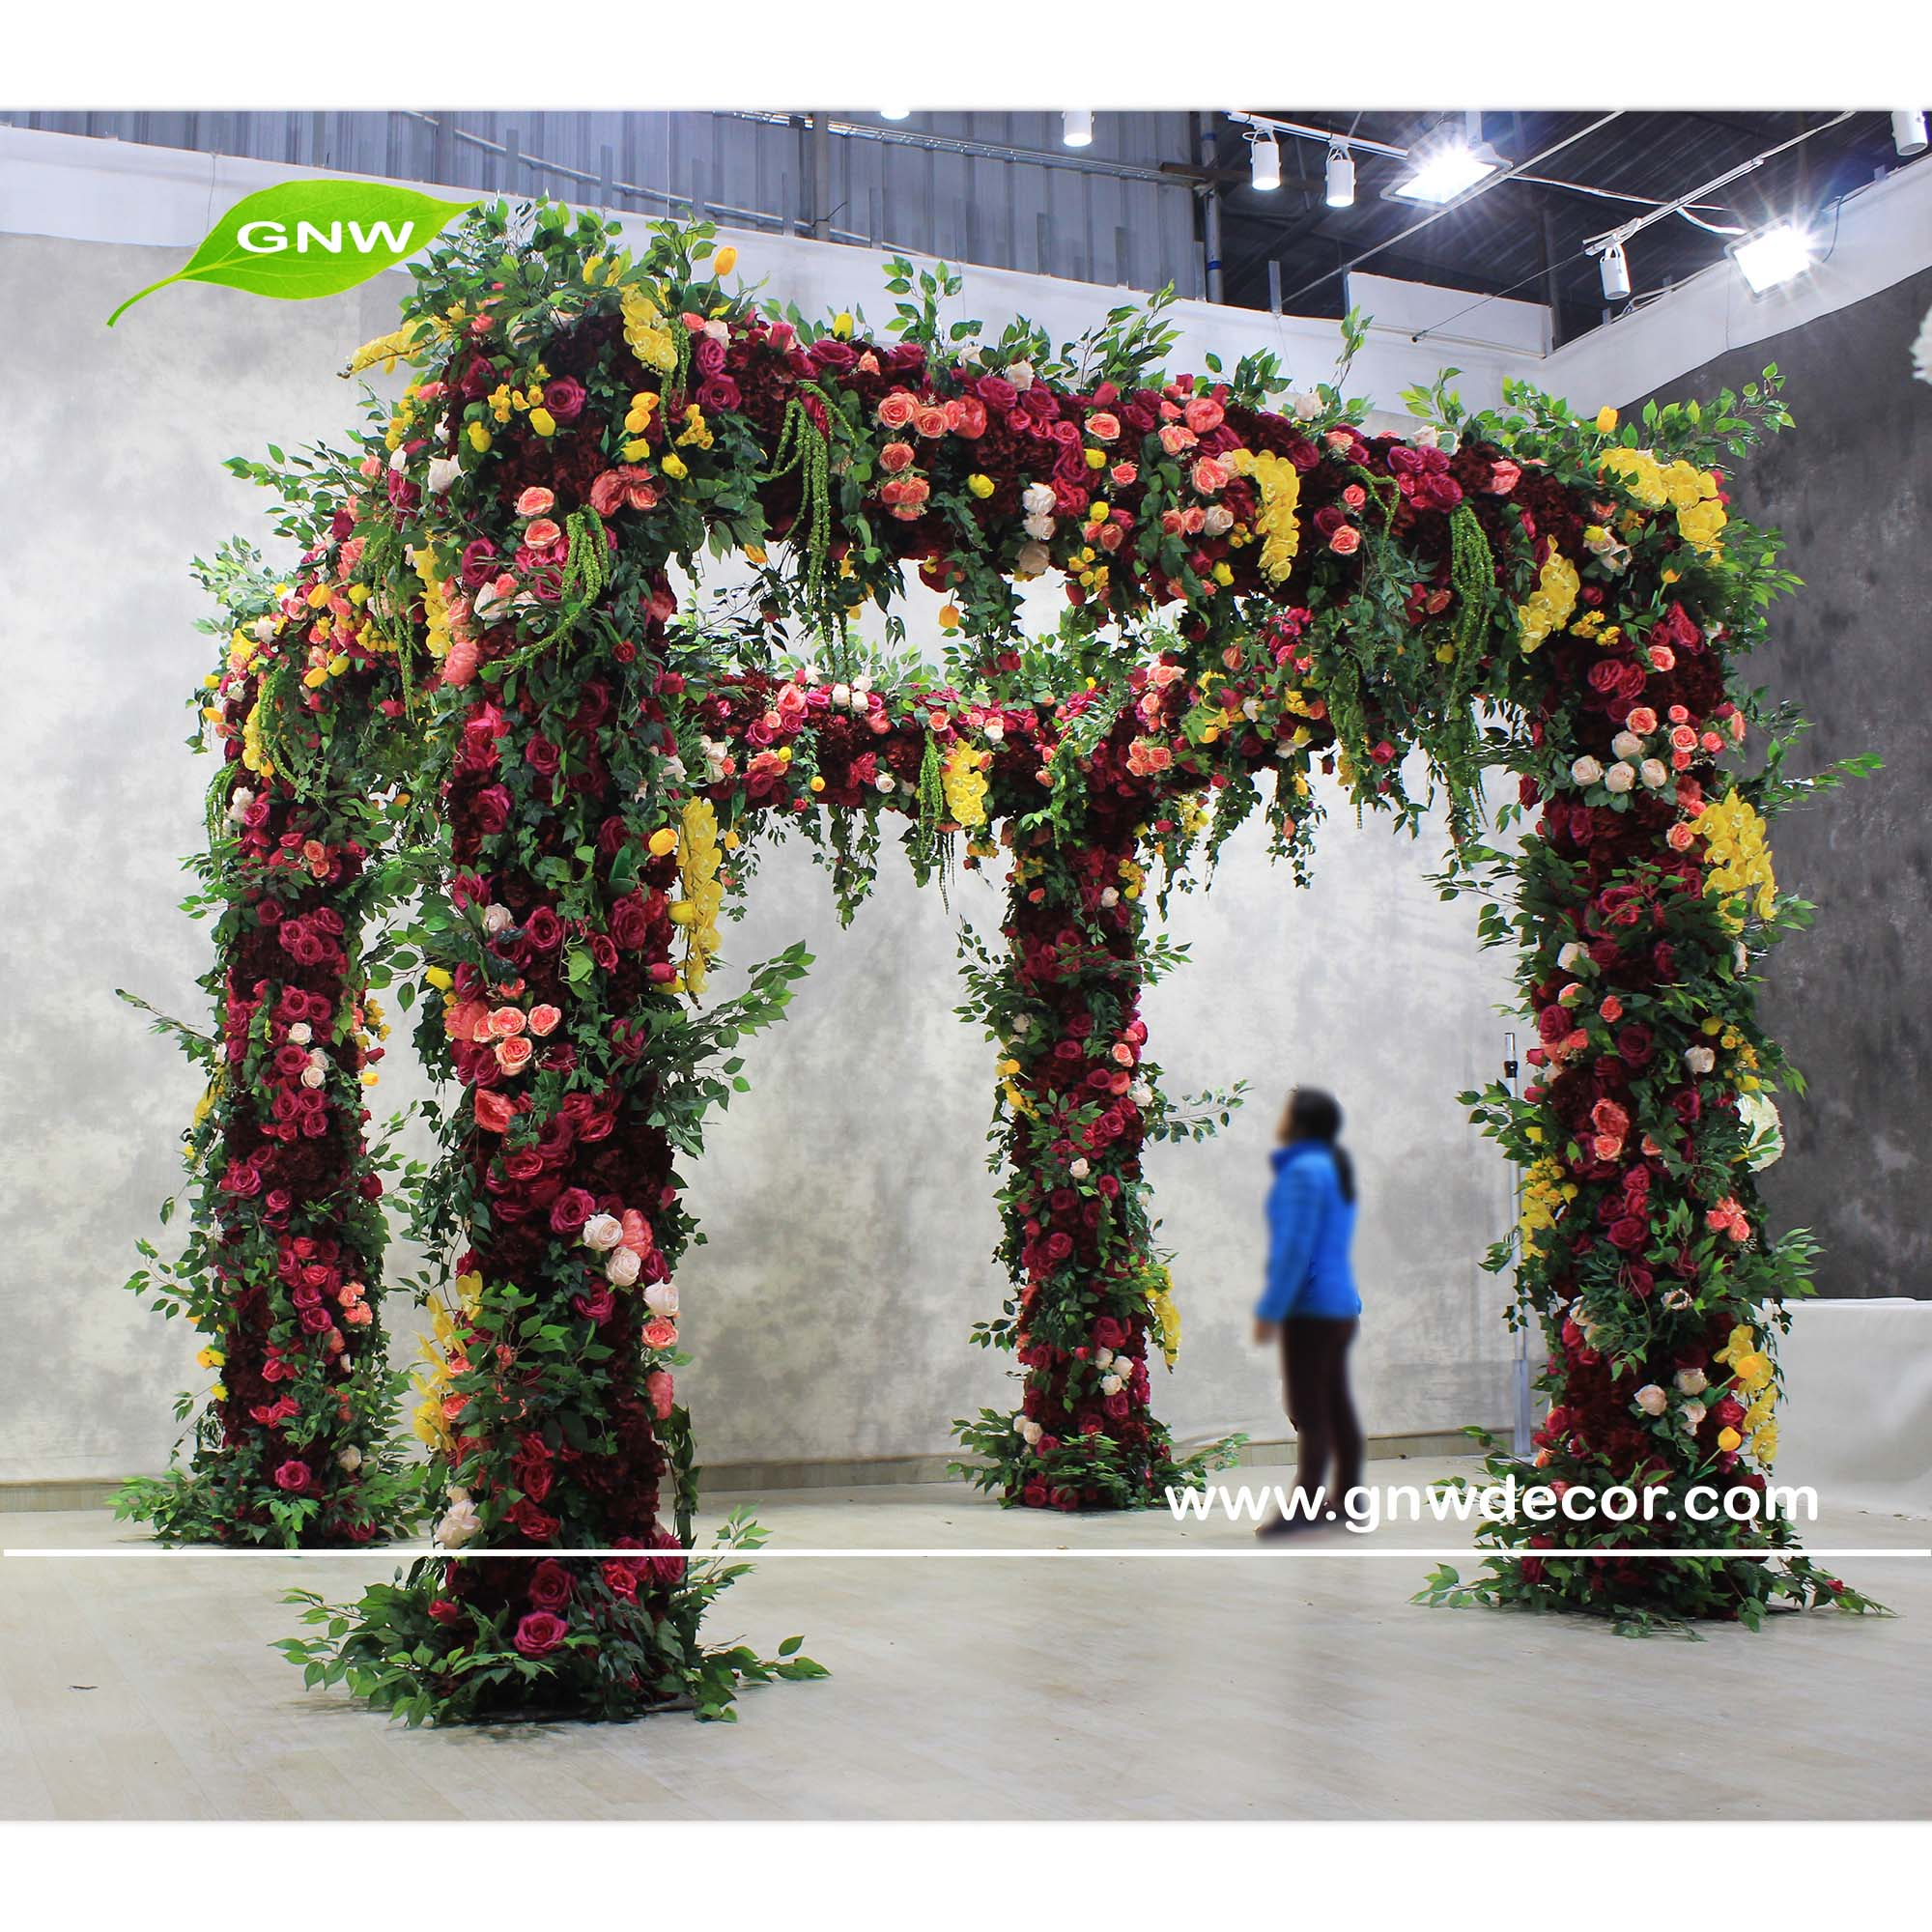 GNW Retro Four-Legged Flower ArchWedding Stage Decoration Metal Arch Wedding  Party, View Wedding Stage Decoration, GNW Product Details from GNW  Technology Co., Ltd. on Alibaba.com